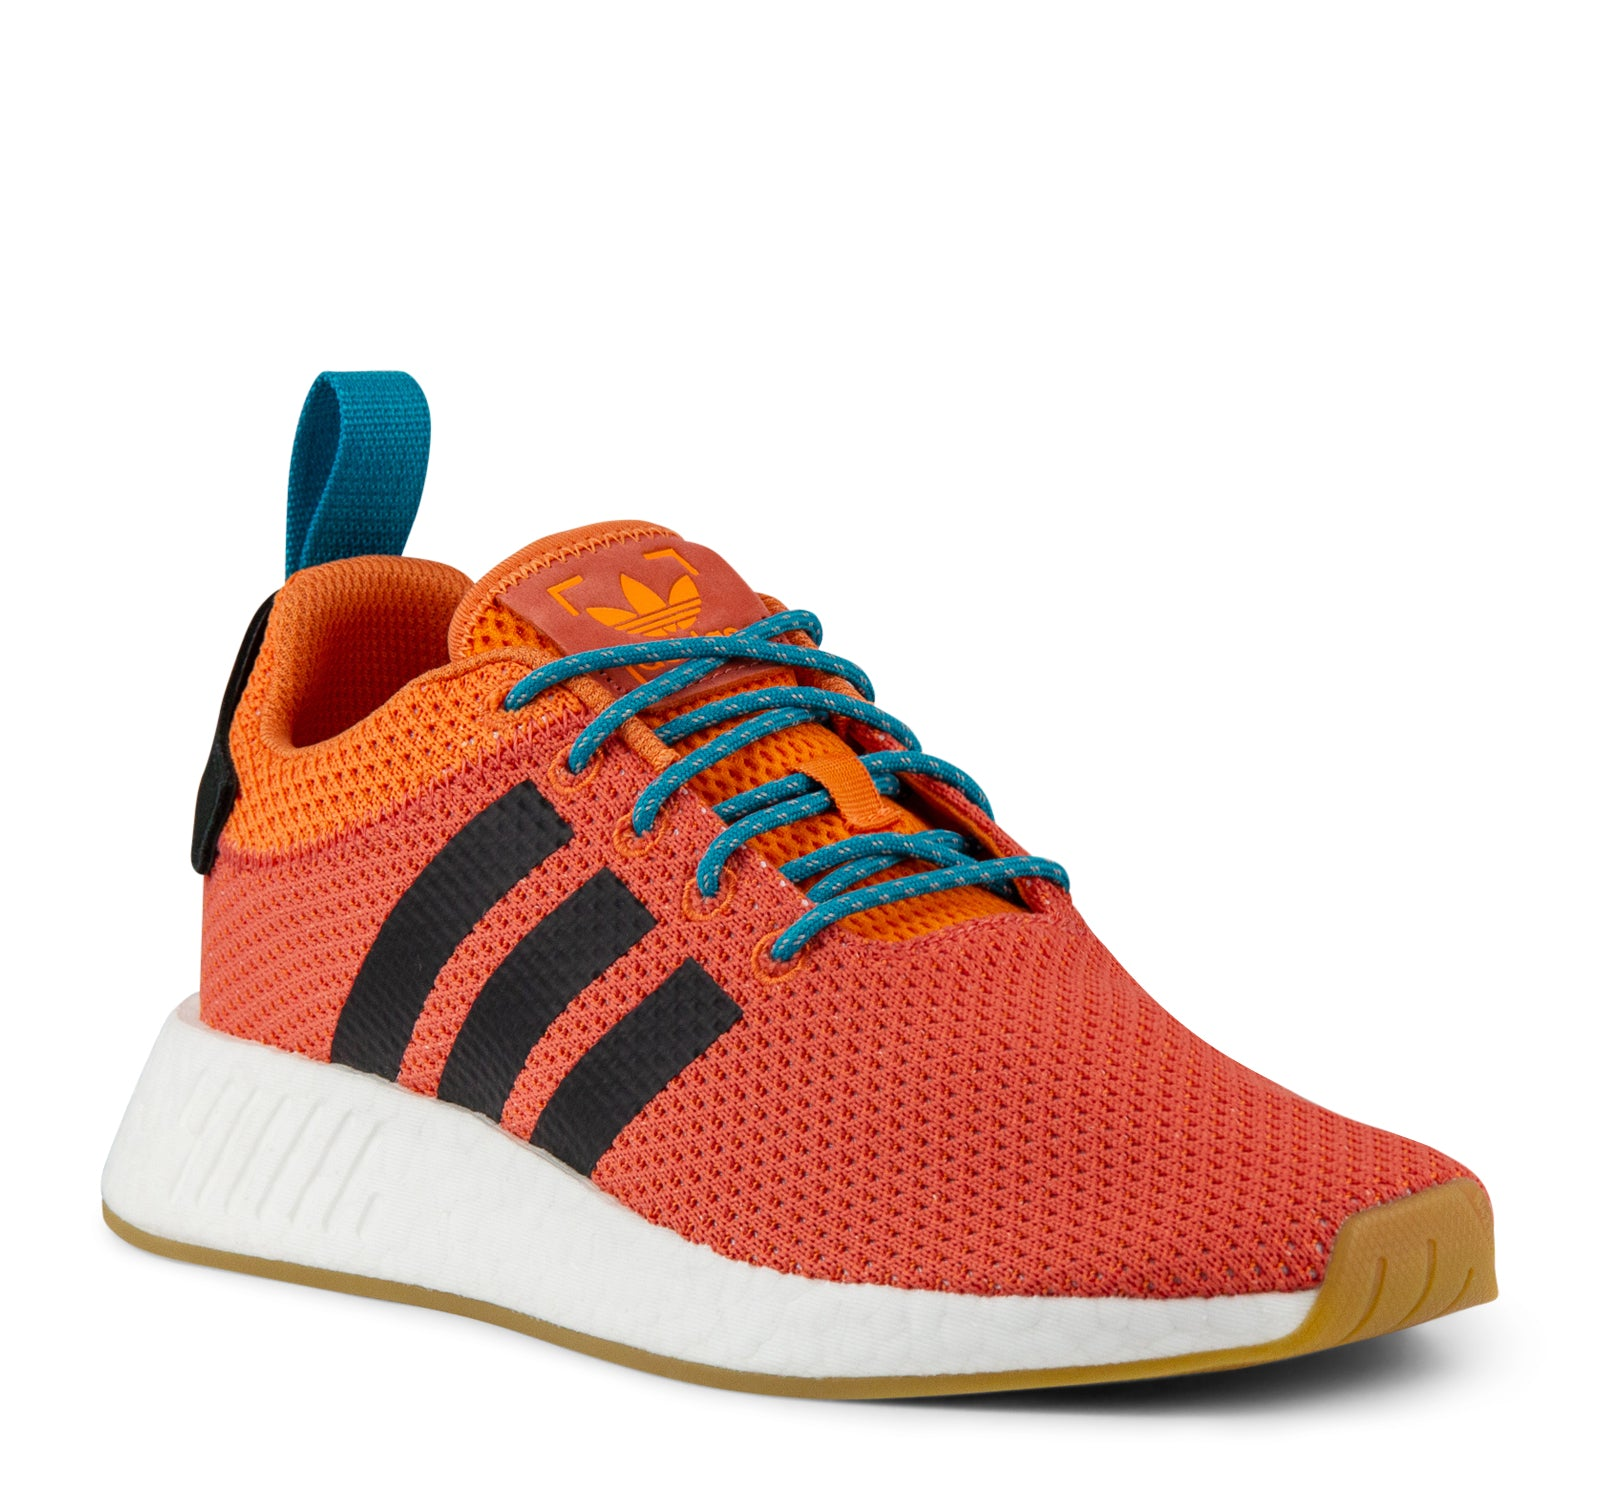 260b963e91962 ... Adidas NMD R2 Summer CQ3081 Men s Sneaker in Orange and White - Adidas  - On The ...